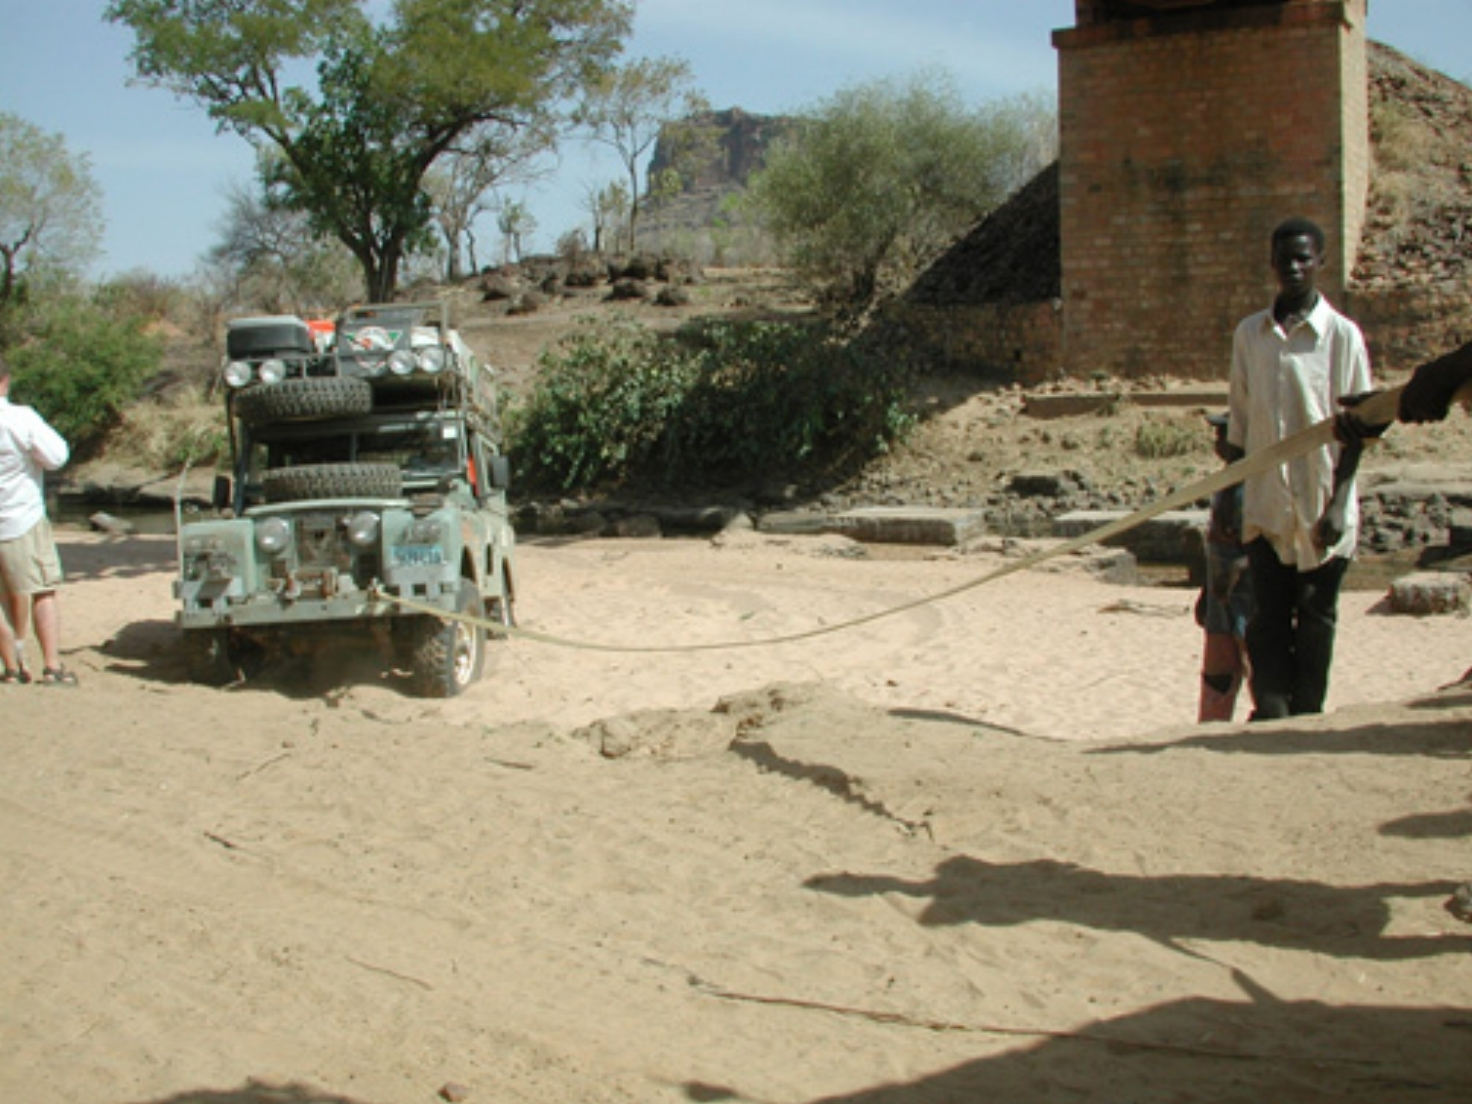 Michael Ladden's Land Rover stuck in Mali Africa